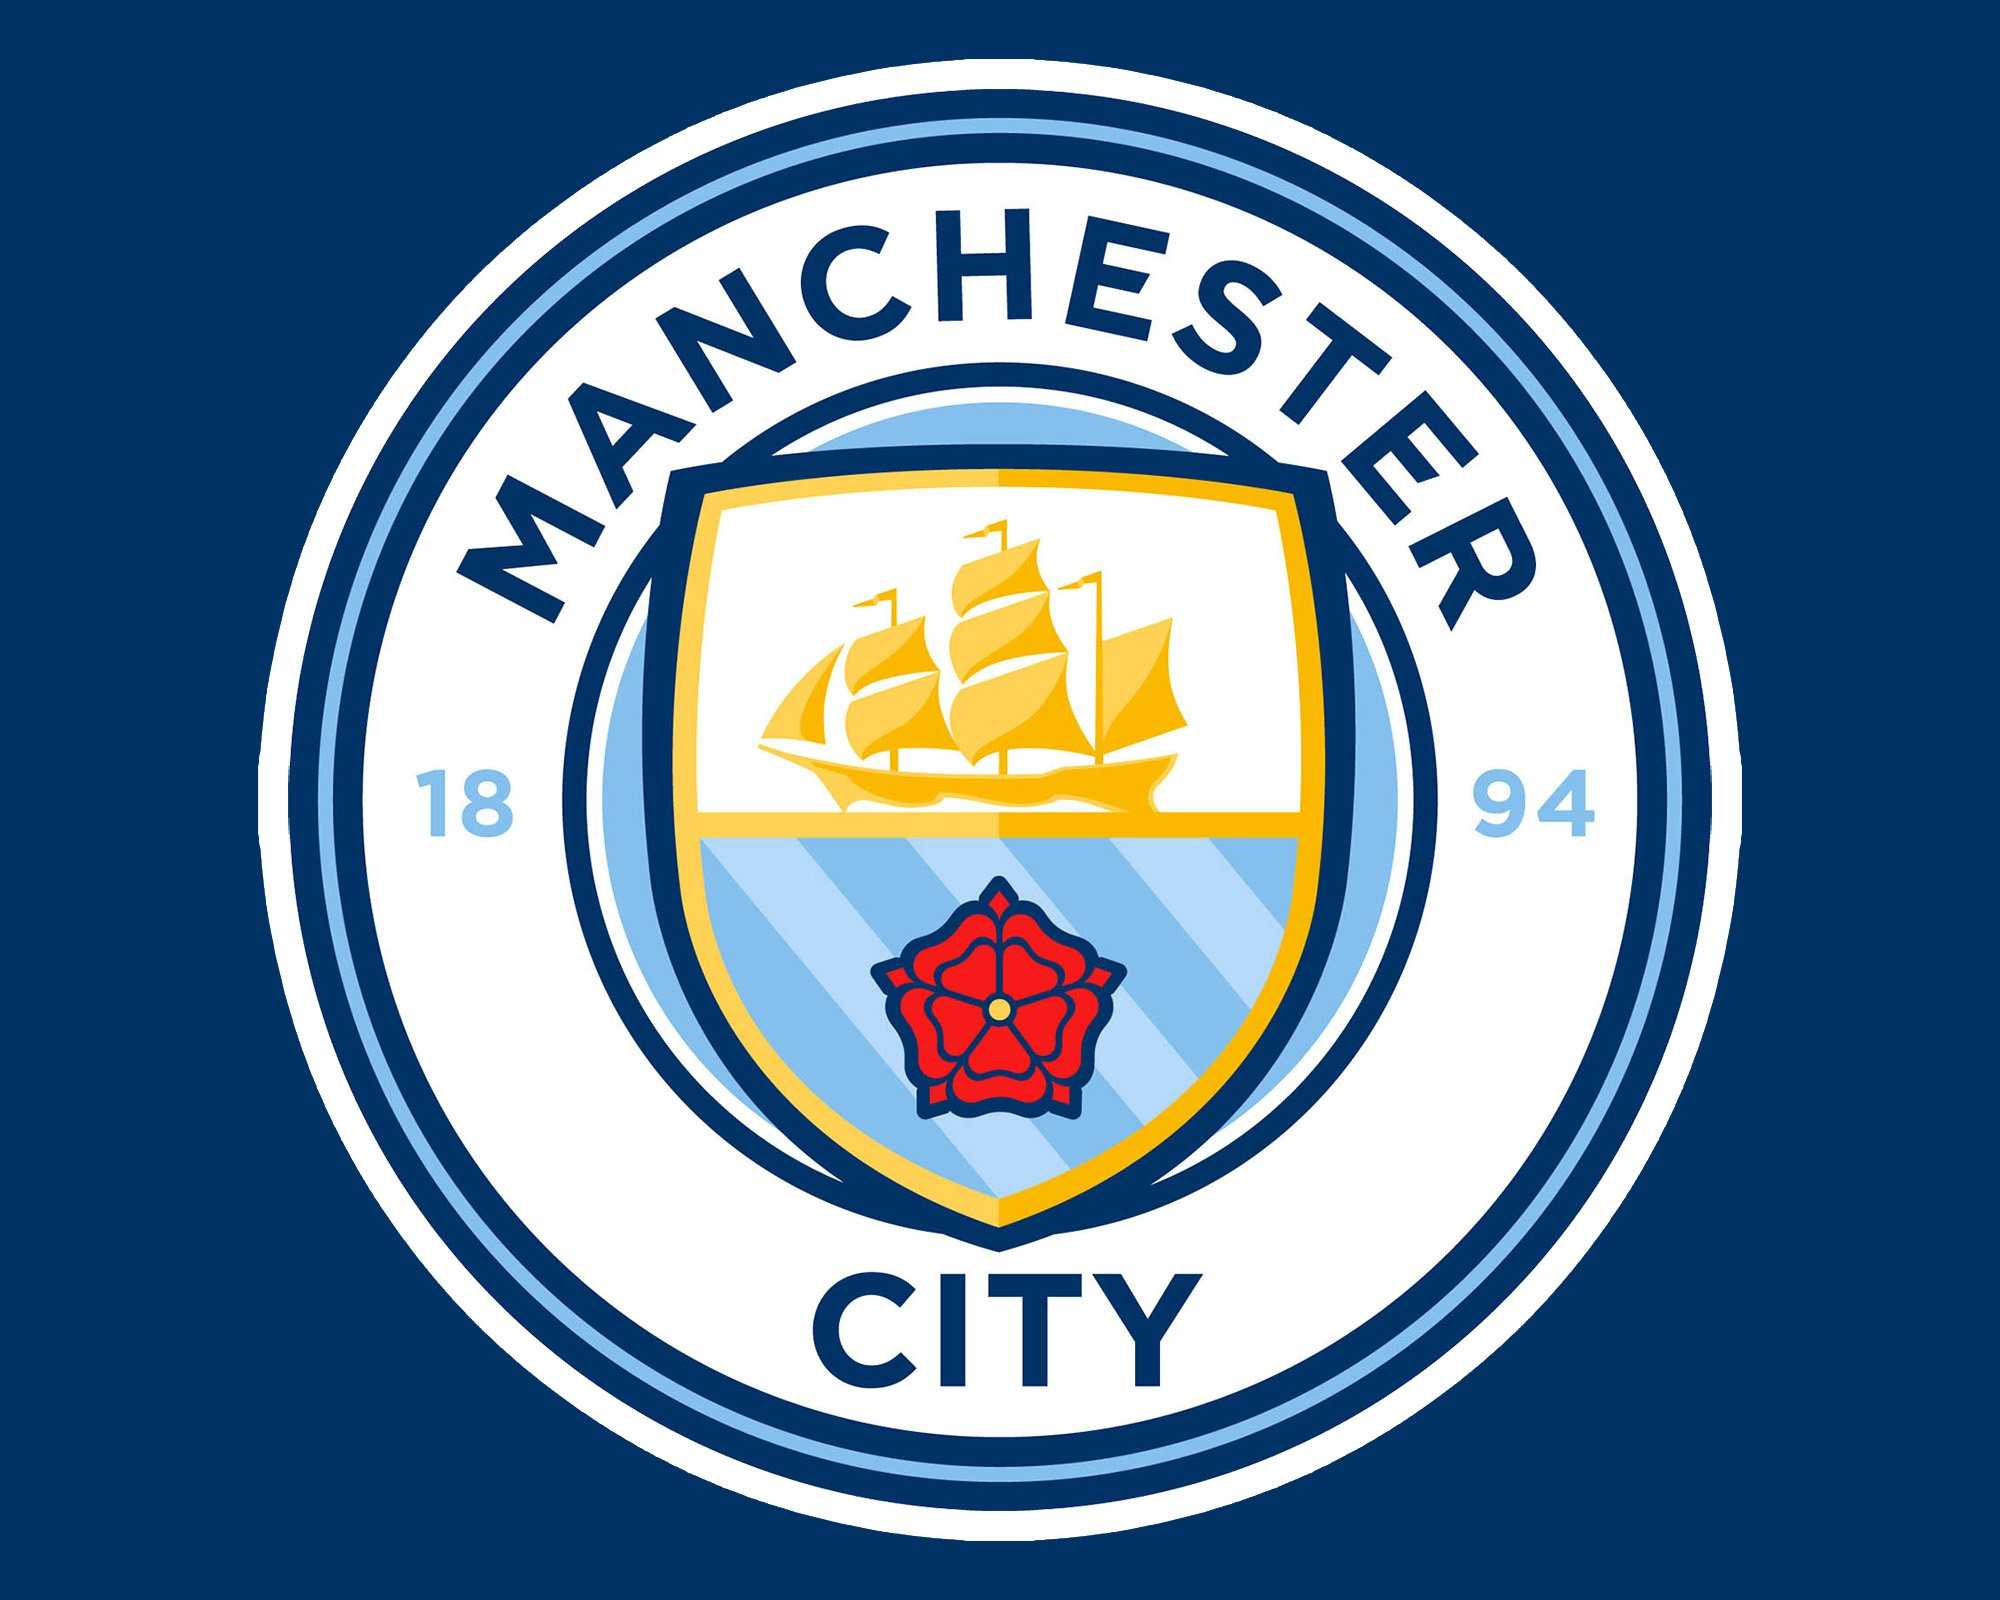 Manchester City: Manchester City Logo, Manchester City Symbol, Meaning